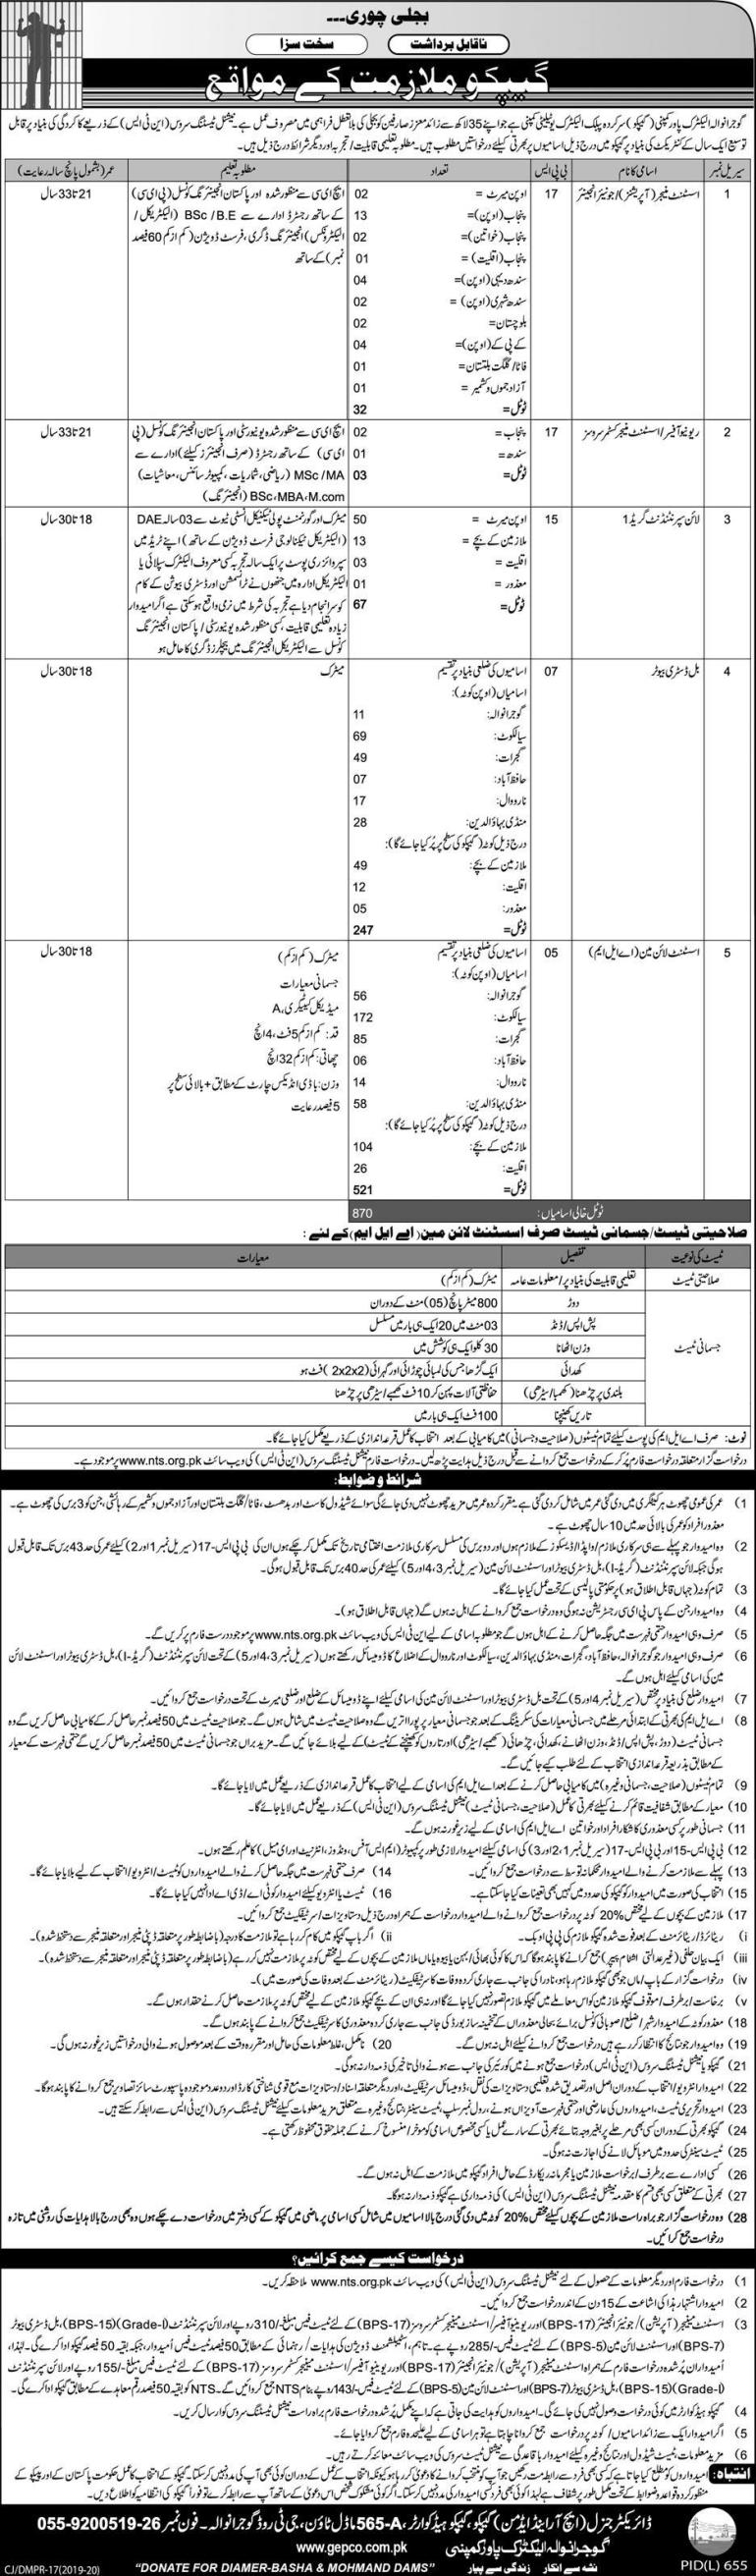 "Punjab Public Service Commission Lahore required applications for vacant posts or jobs in different departments (<em><strong>Specialized Healthcare and Medical Education Department, Planning and Development Board and Social Welfare and Bait ul Maal Department Punjab</strong></em>) from male and female applicants of Punjab on permanent basis. <div class=""table-users""> <div class=""headera""> <h3 style=""text-align: center;"">Job Details</h3> Complete job details of Punjab Public Service Commission Jobs are as fallows. </div> <table cellspacing=""0""> <tbody> <tr> <td><b>Organization Name:</b></td> <td>Punjab Public Service Commission</td> </tr> <tr> <td><strong>Job Type:</strong></td> <td>Government/Permanent</td> </tr> <tr> <td><strong>No. of Total Vacancies:</strong></td> <td>More than 55</td> </tr> <tr> <td><strong>Age limits:</strong></td> <td>18 to 30 Years</td> </tr> <tr> <td><strong>Qualification:</strong></td> <td> BSc/MSc/M.Phil/MBBS</td> </tr> <tr> <td><strong>Experience:</strong></td> <td>Should be preferred.</td> </tr> </tbody> </table> </div> <h3 style=""text-align: center;"">Application Deadline</h3> <span style=""font-size: 14px; letter-spacing: -0.025em;""><span style=""letter-spacing: -0.025em;"">Last date of submission of Application is <strong>23 </strong></span><strong>September 2019</strong><span style=""letter-spacing: -0.025em;""> for PPSC Jobs</span><span style=""letter-spacing: -0.025em;"">.</span></span> <div class=""table-users""> <div class=""headera""> <h3 style=""text-align: center;"">Application Process</h3> Willing candidates/applicants who meet the eligibility or qualification criteria can apply for Punjab Public Service Commission Lahore Jobs. The complete application process is as below or for more details view the job advertisement. <ol> <li style=""list-style-type: none;""> <ol> <li>For Online Application submission visit PPSC official website. <strong>Or visit this link: </strong><a>http://www.ppsc.gop.pk/(S(jsmaxvjhylhqn1rrsz1da0j5))/jobs.aspx</a></li> <li>Deposit Rupees 600 for posts (Sr. No.285 to Sr. No.289 and Sr. No.291 & 292) in any Branch of National Bank of Pakistan before the closing date of Application Submission. <em><strong>Note: Special persons are not required to deposit application fee.</strong></em></li> <li>For Details and quires email at <strong>ppsc@punjab.gov.pk</strong> or call on UAN No. (+92) 042 111 988 722.</li> </ol> </li> </ol> </div> </div> <a href=""https://jobsurdu.com/wp-content/uploads/2019/09/Punjab-Public-Service-Commission-Lahore-Jobs-Advertisement.png"" target=""_blank"" rel=""noopener noreferrer""><img class=""aligncenter wp-image-6703 size-full"" title=""Punjab Public Service Commission Lahore Jobs Advertisement"" src=""https://jobsurdu.com/wp-content/uploads/2019/09/Punjab-Public-Service-Commission-Lahore-Jobs-Advertisement.png"" alt=""Punjab Public Service Commission Lahore Jobs Advertisement"" width=""1144"" height=""3104"" /></a> <h3>Note</h3> At <a href=""jobsurdu.com/"">JobsUrdu.com</a> we only provide the latest updates & alerts, detailed information and application procedure about different jobs. We didn't provide any type of testing or visa service for listed jobs, nor affiliated with any advertising organization or recruitment agency."